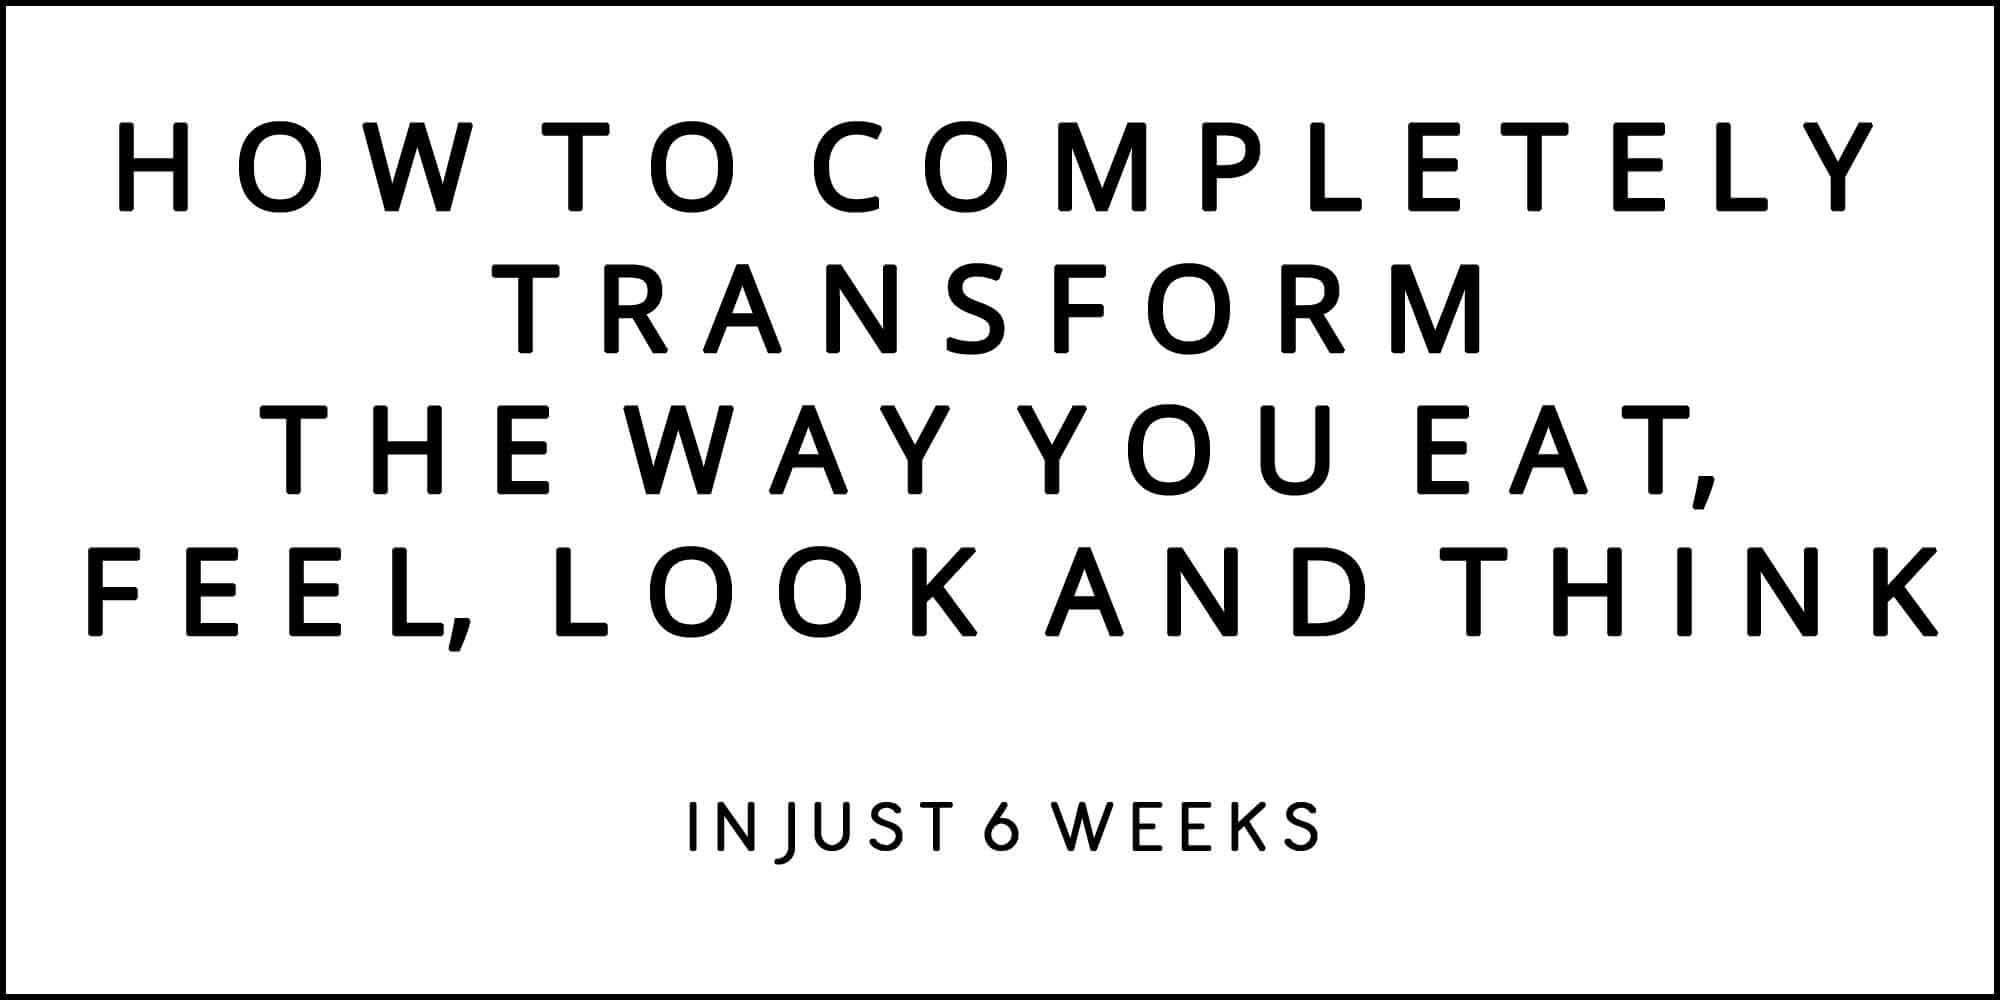 HOW TO COMPLETELY TRANSFORM THE WAY YOU EAT, FEEL, LOOK AND THINK